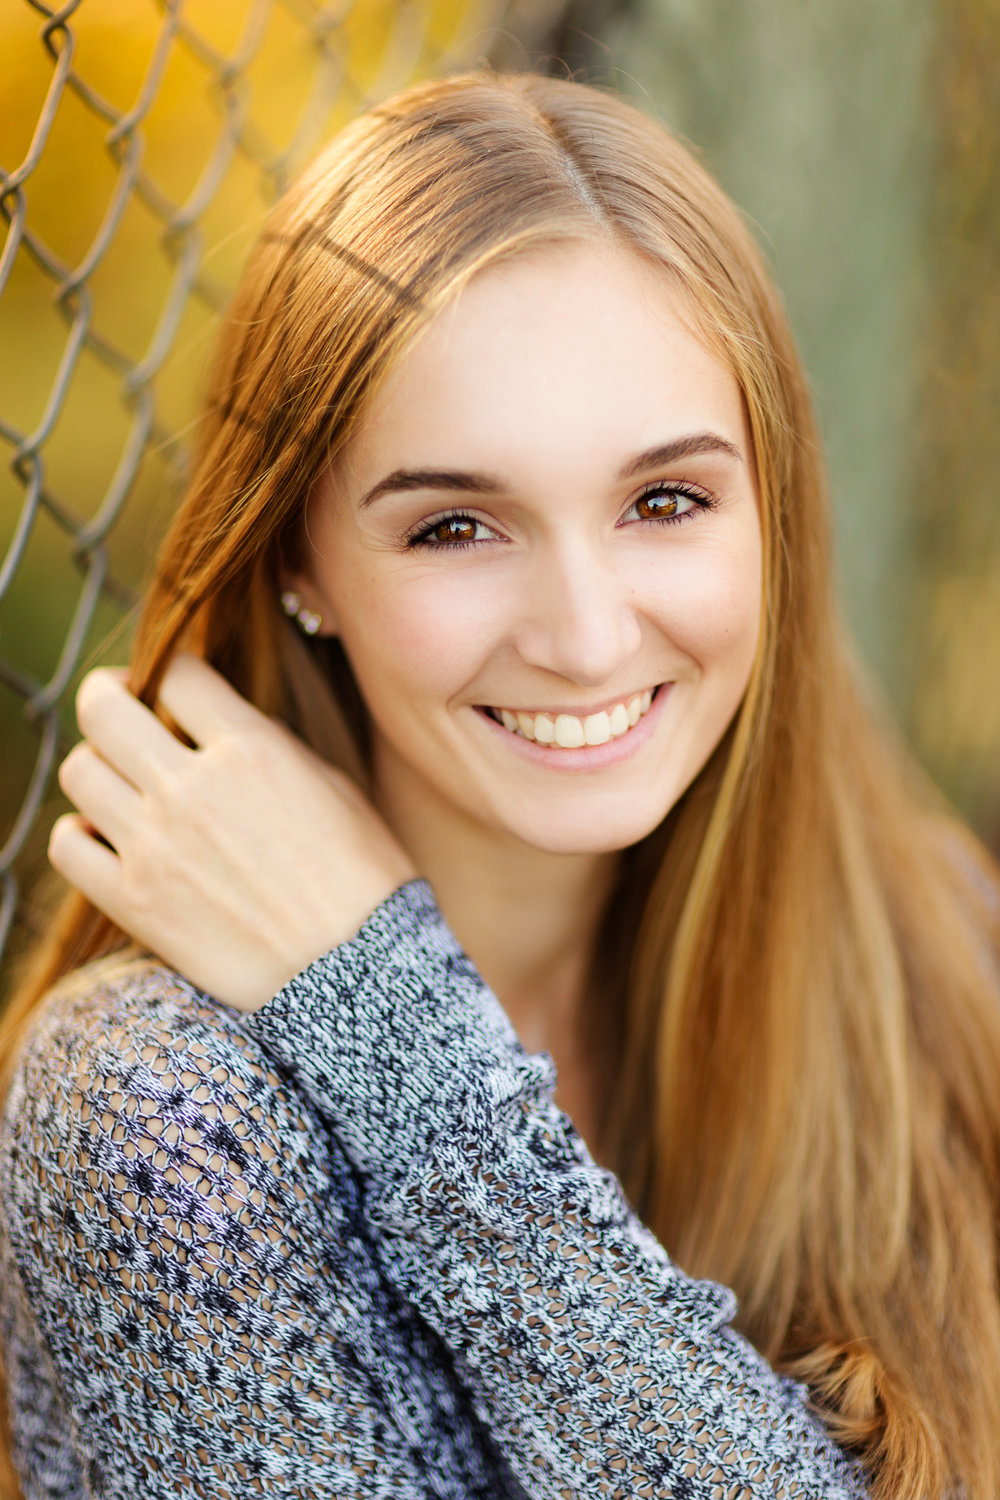 ariellanoellephotography-portraiture-highschool-seniors-top-seattle-area-photographer-1-34.jpg